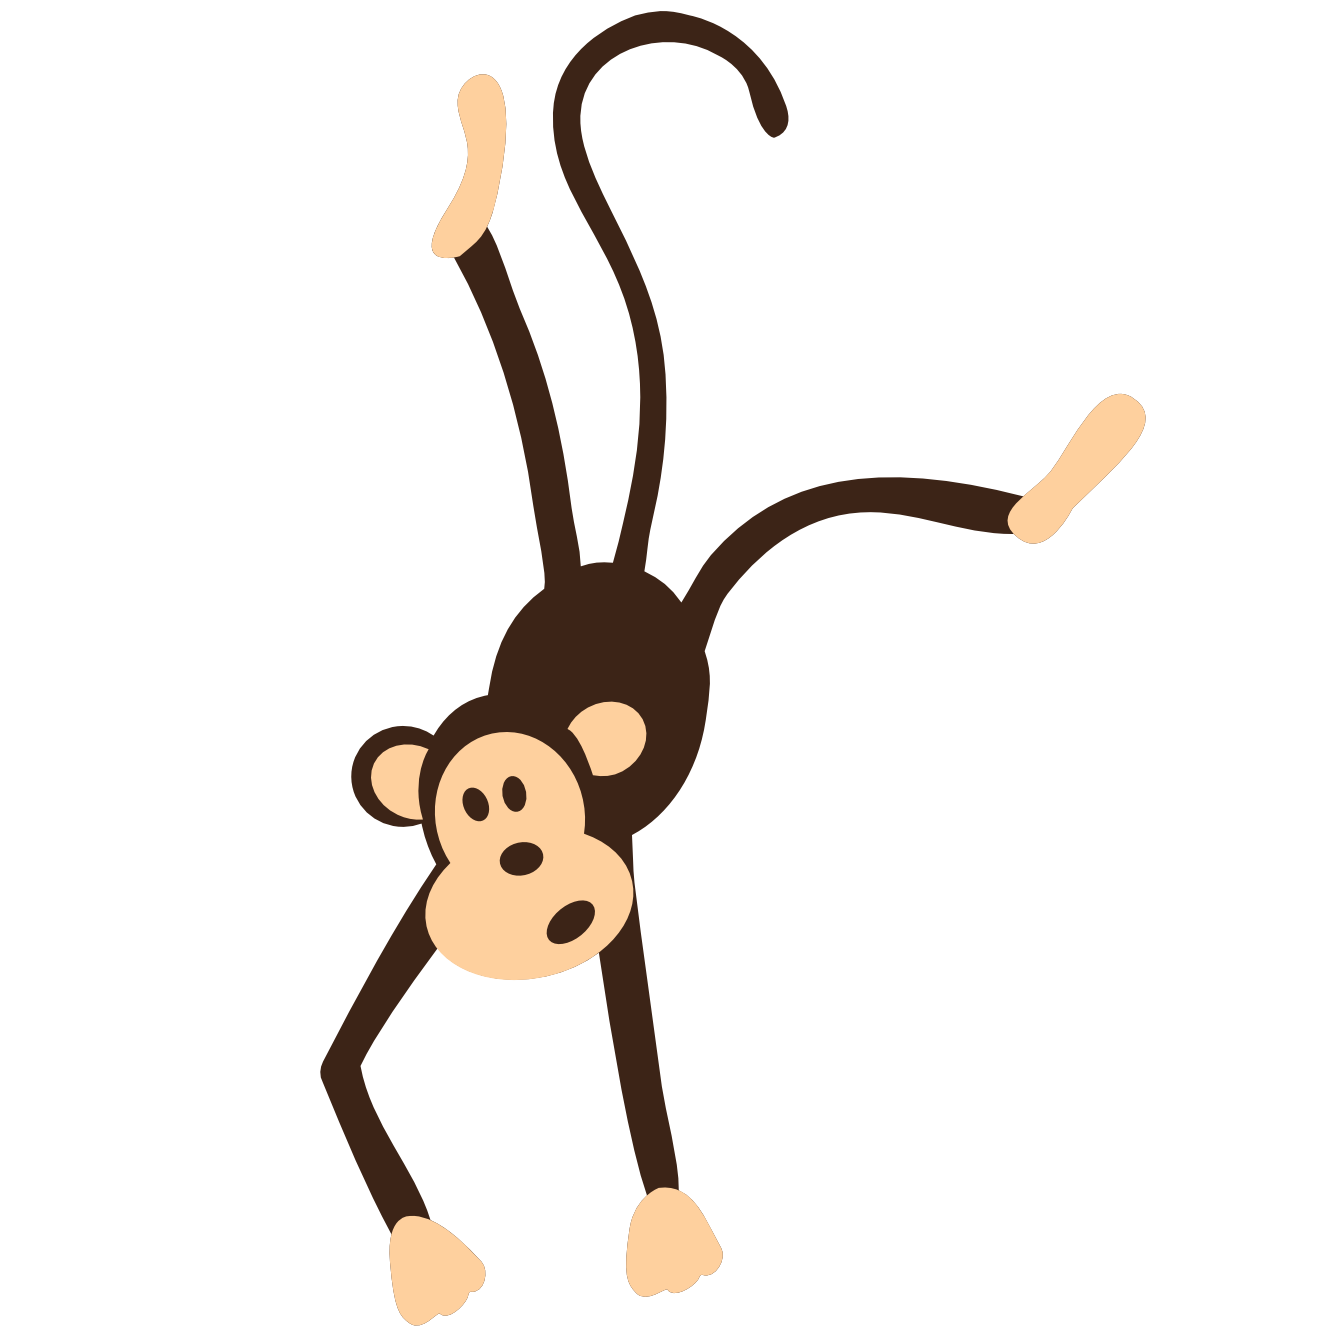 Monkey in tree clipart picture freeuse library Monkey Clip Art Free For Teachers | Clipart Panda - Free Clipart Images picture freeuse library